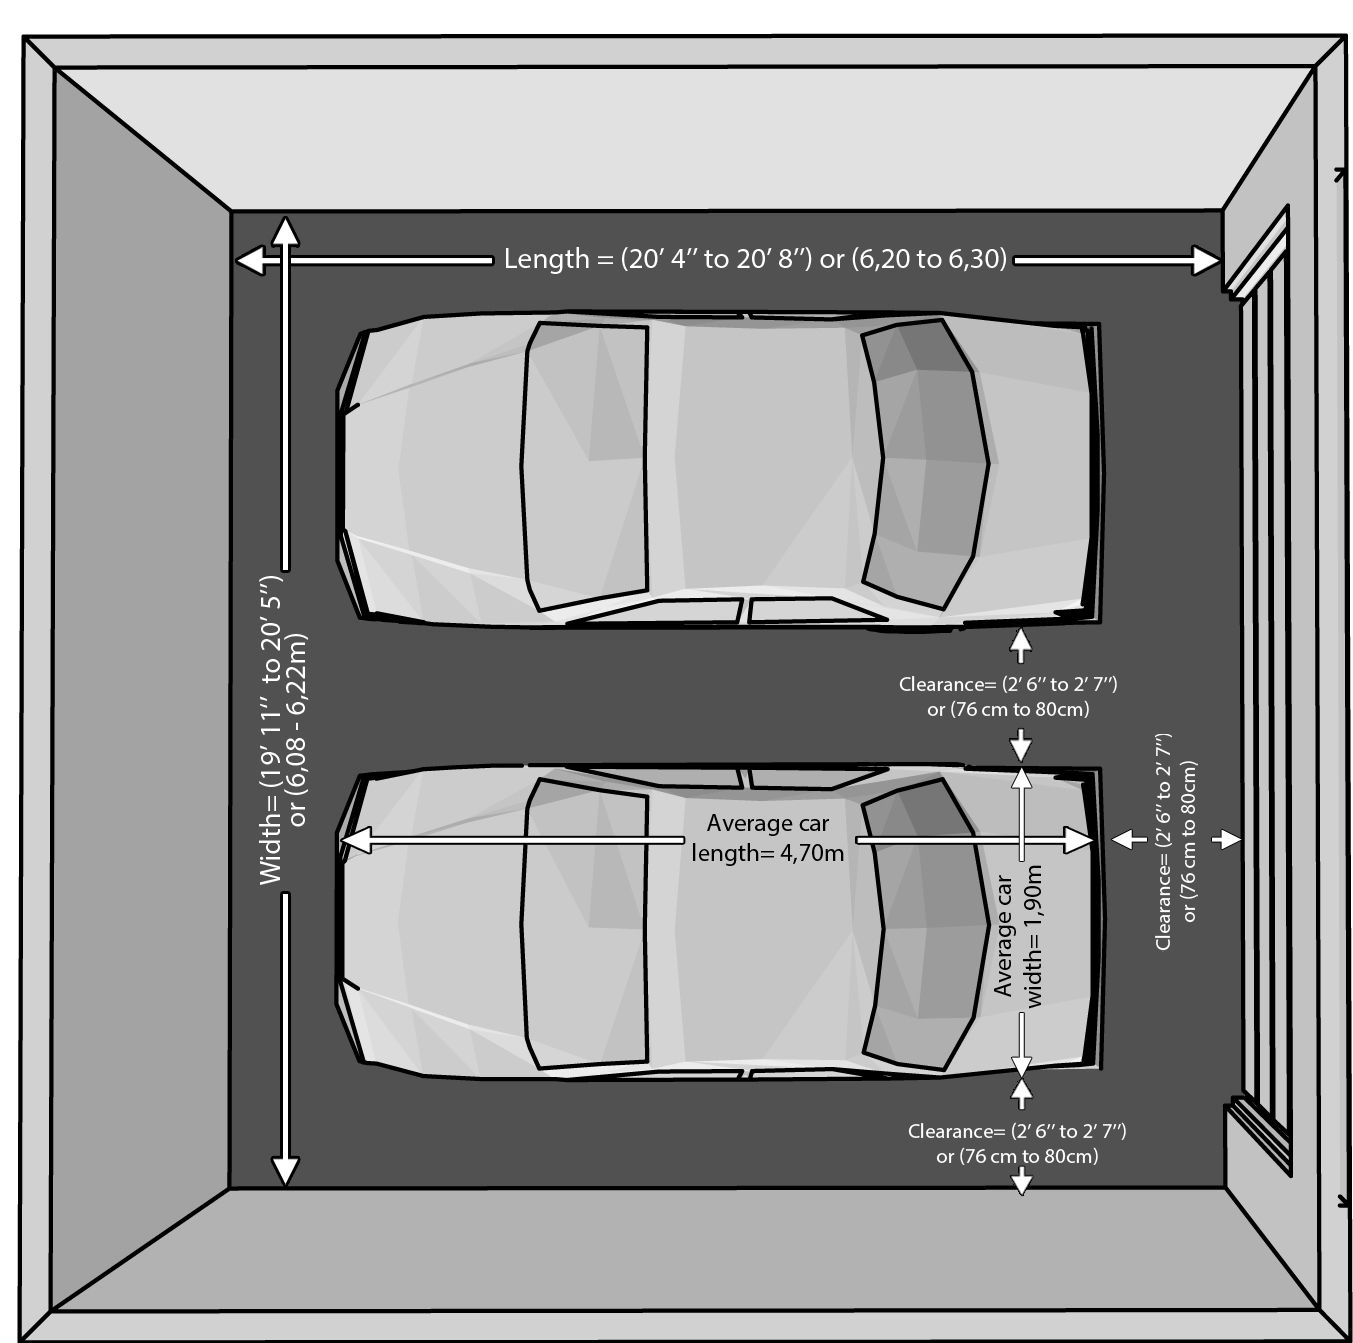 Garage size for two cars garage dimensions for two cars for Standard double car garage door size